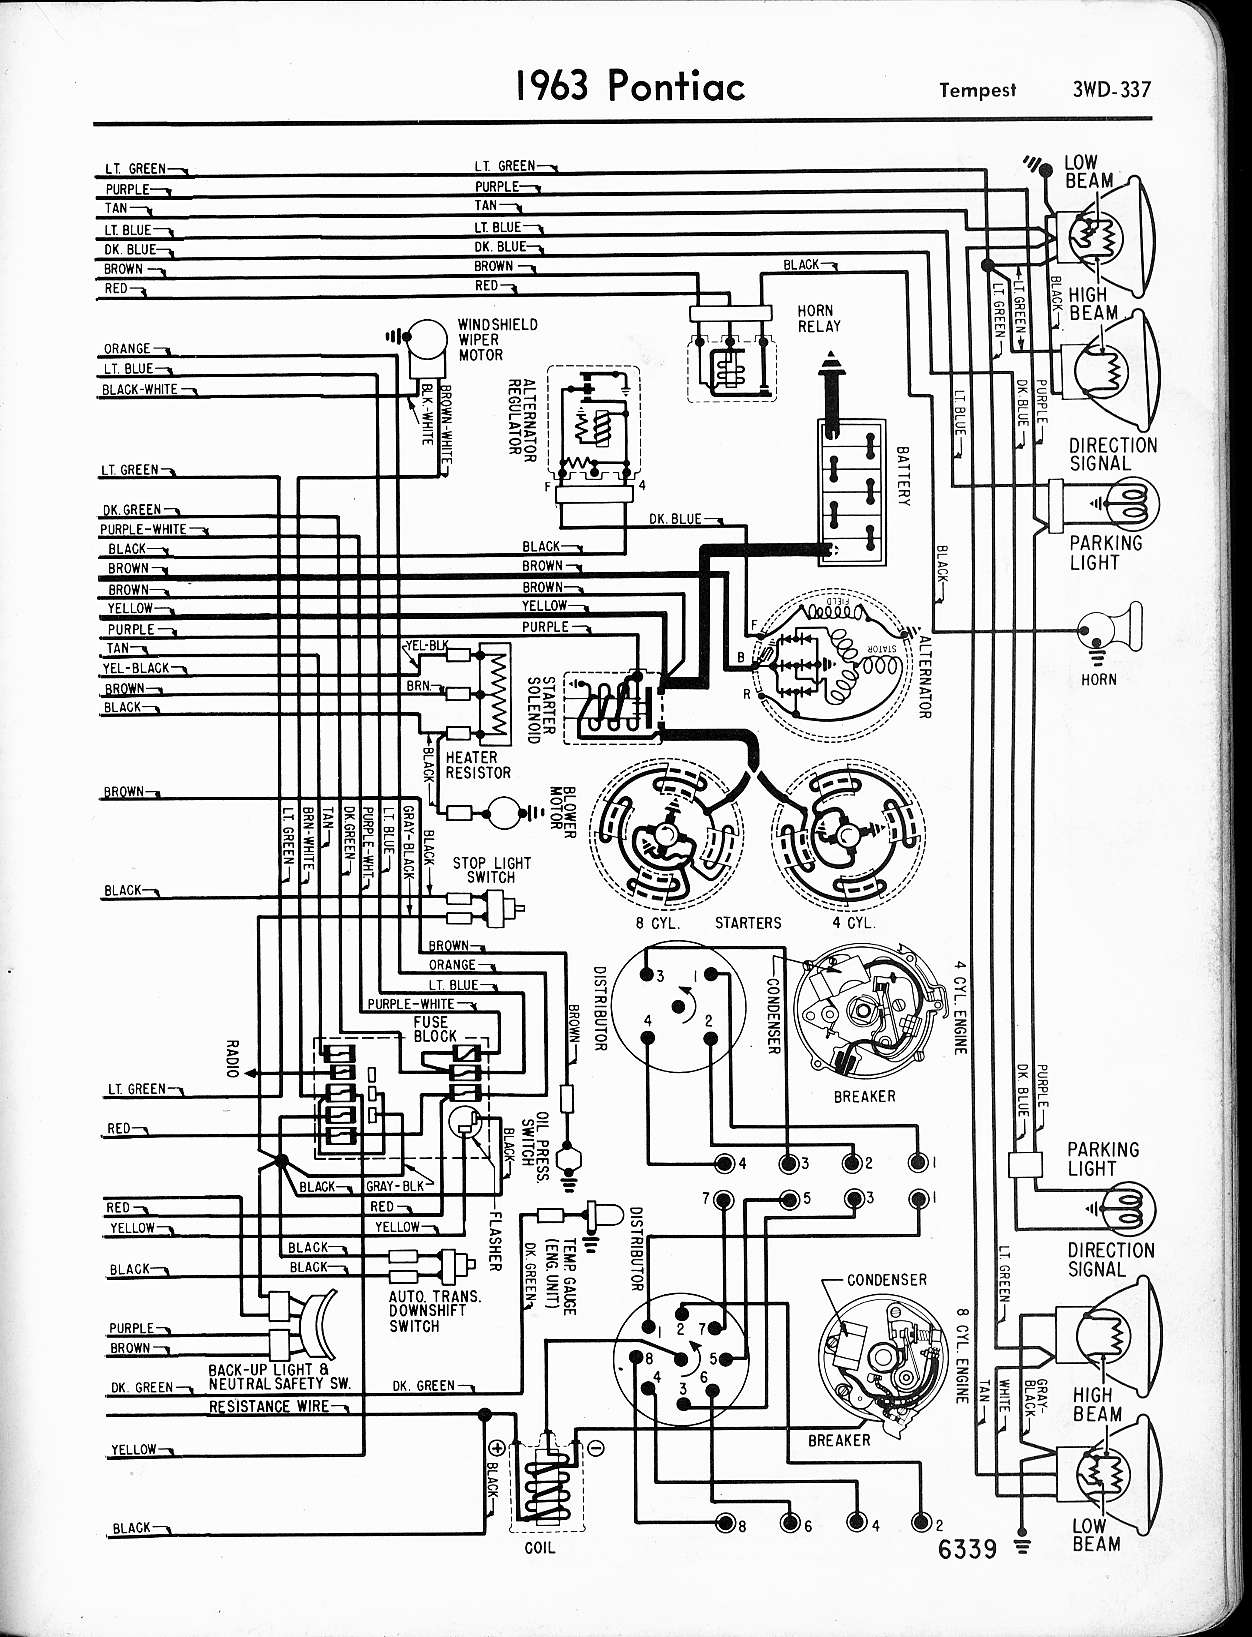 Wallace Racing Wiring Diagrams 2002 Chevy Cavalier Wiring Diagram 2003 Chevy Cavalier Wiring Diagram 2002 Chevy Cavalier Ignition Wiring Diagram